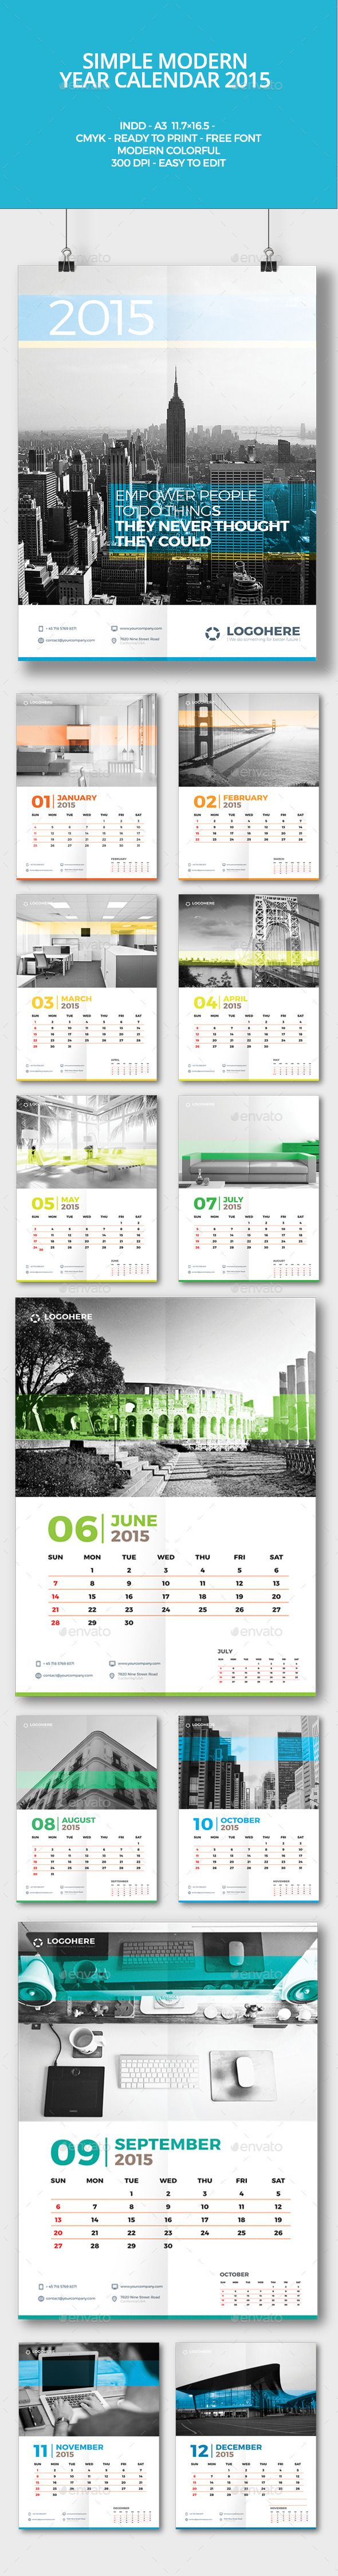 Simple Modern Year Calendar 2015 Template | Buy and Download: http://graphicriver.net/item/simple-modern-year-calendar-2015/9687941?ref=ksioks